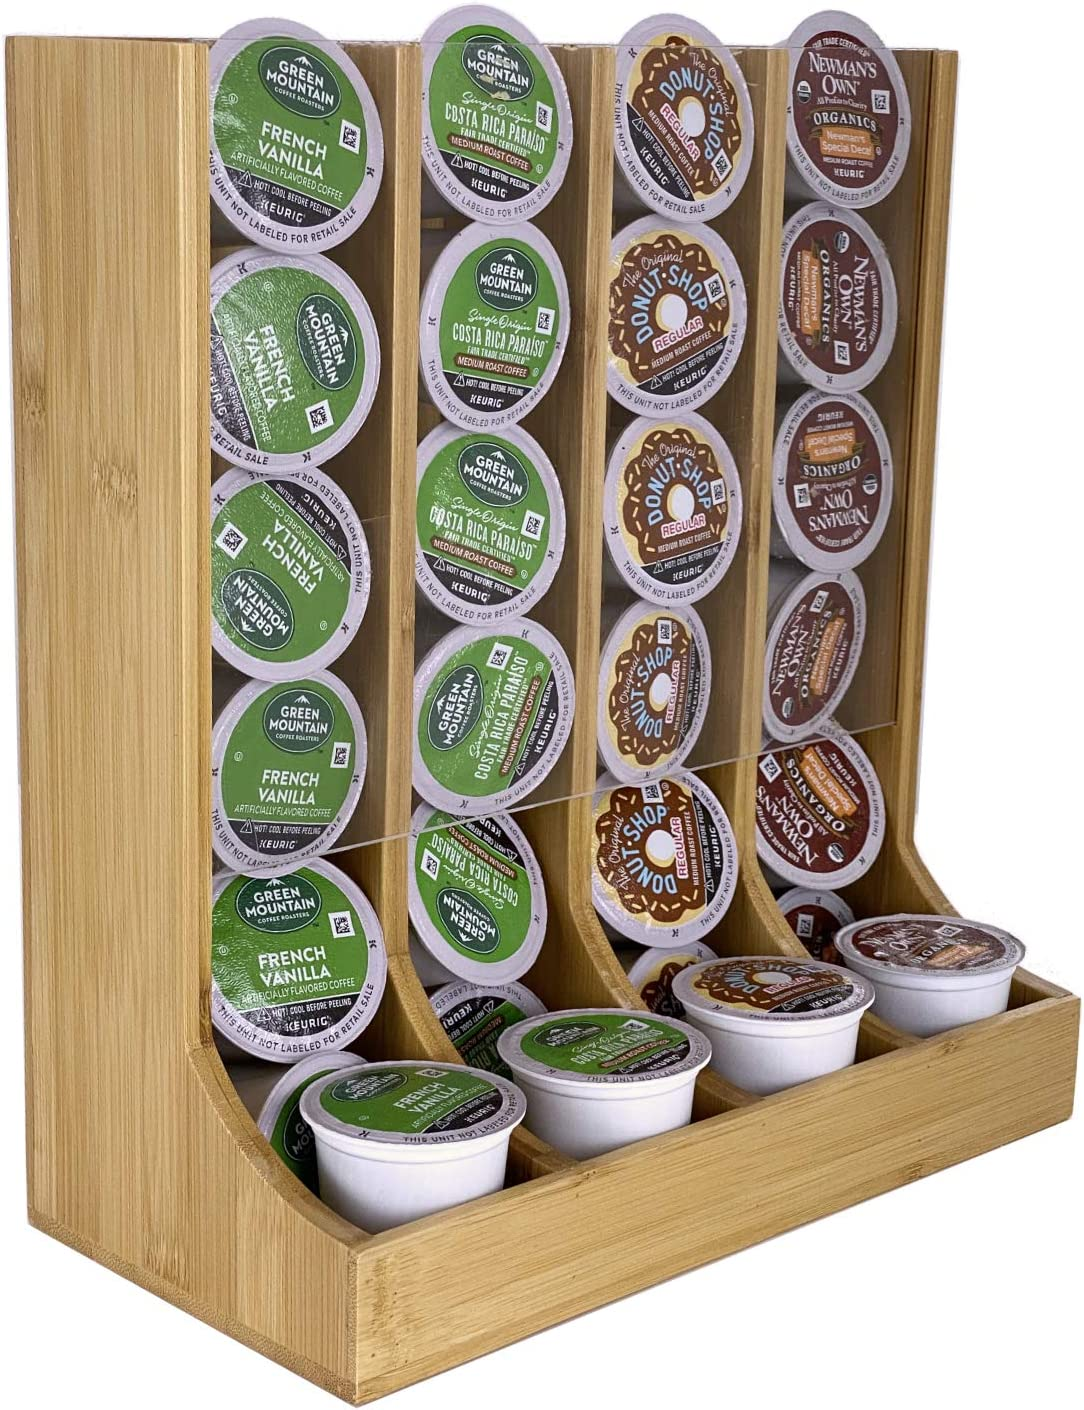 Coffee K Cup Holder Bamboo - Coffee K-cup Pods Organizer For Coffee Station - Coffee Storage - K Cup Organizer For Counter Top Coffee Pod Holder Rack